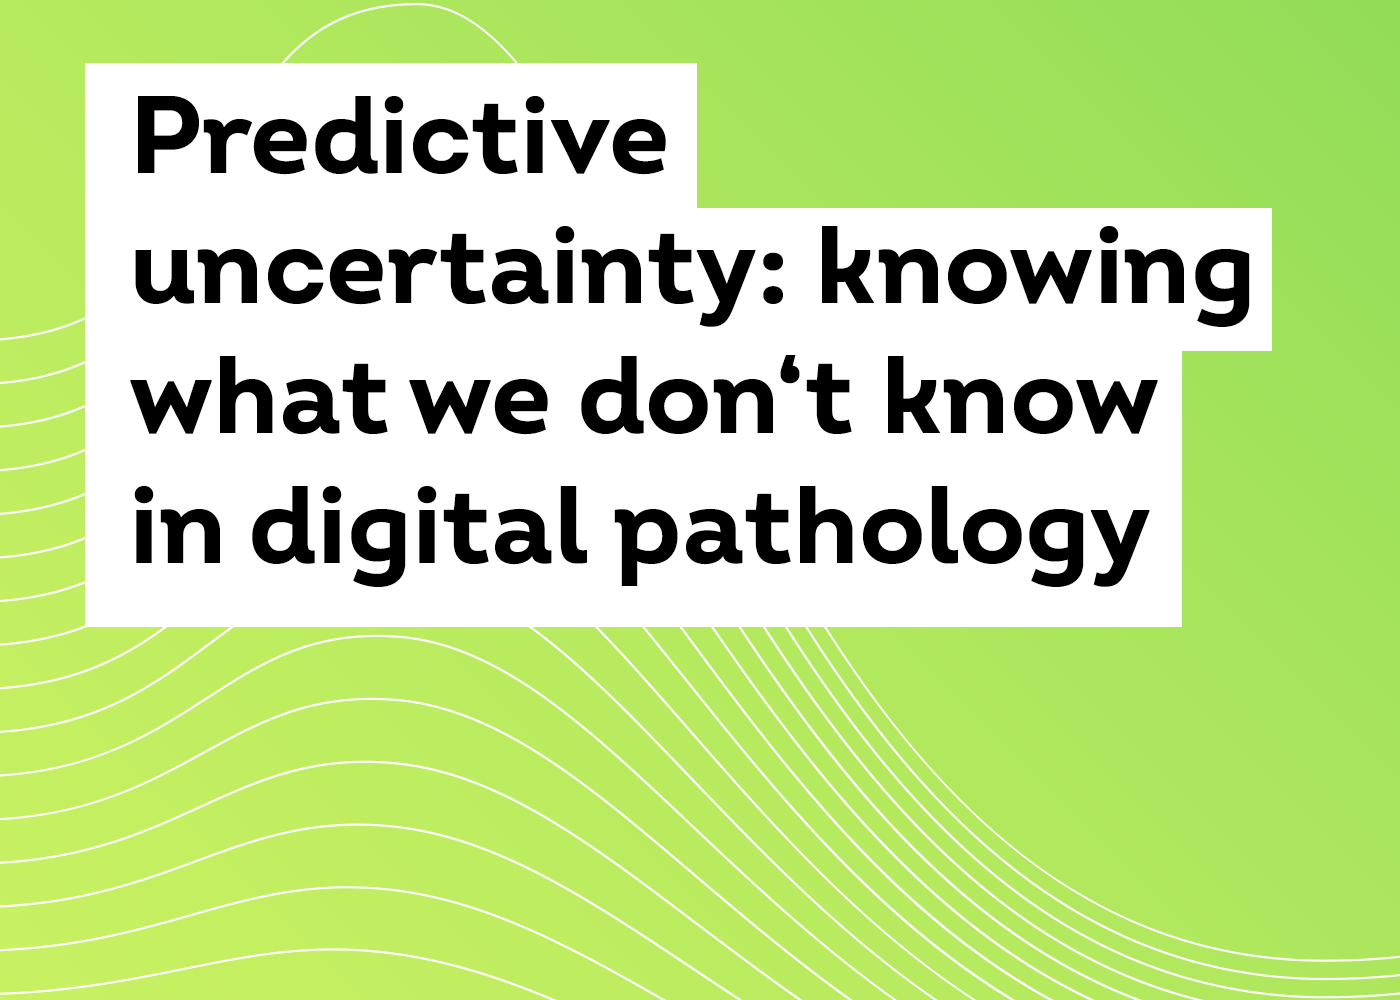 Predictive uncertainty: Knowing what we don't know in image data